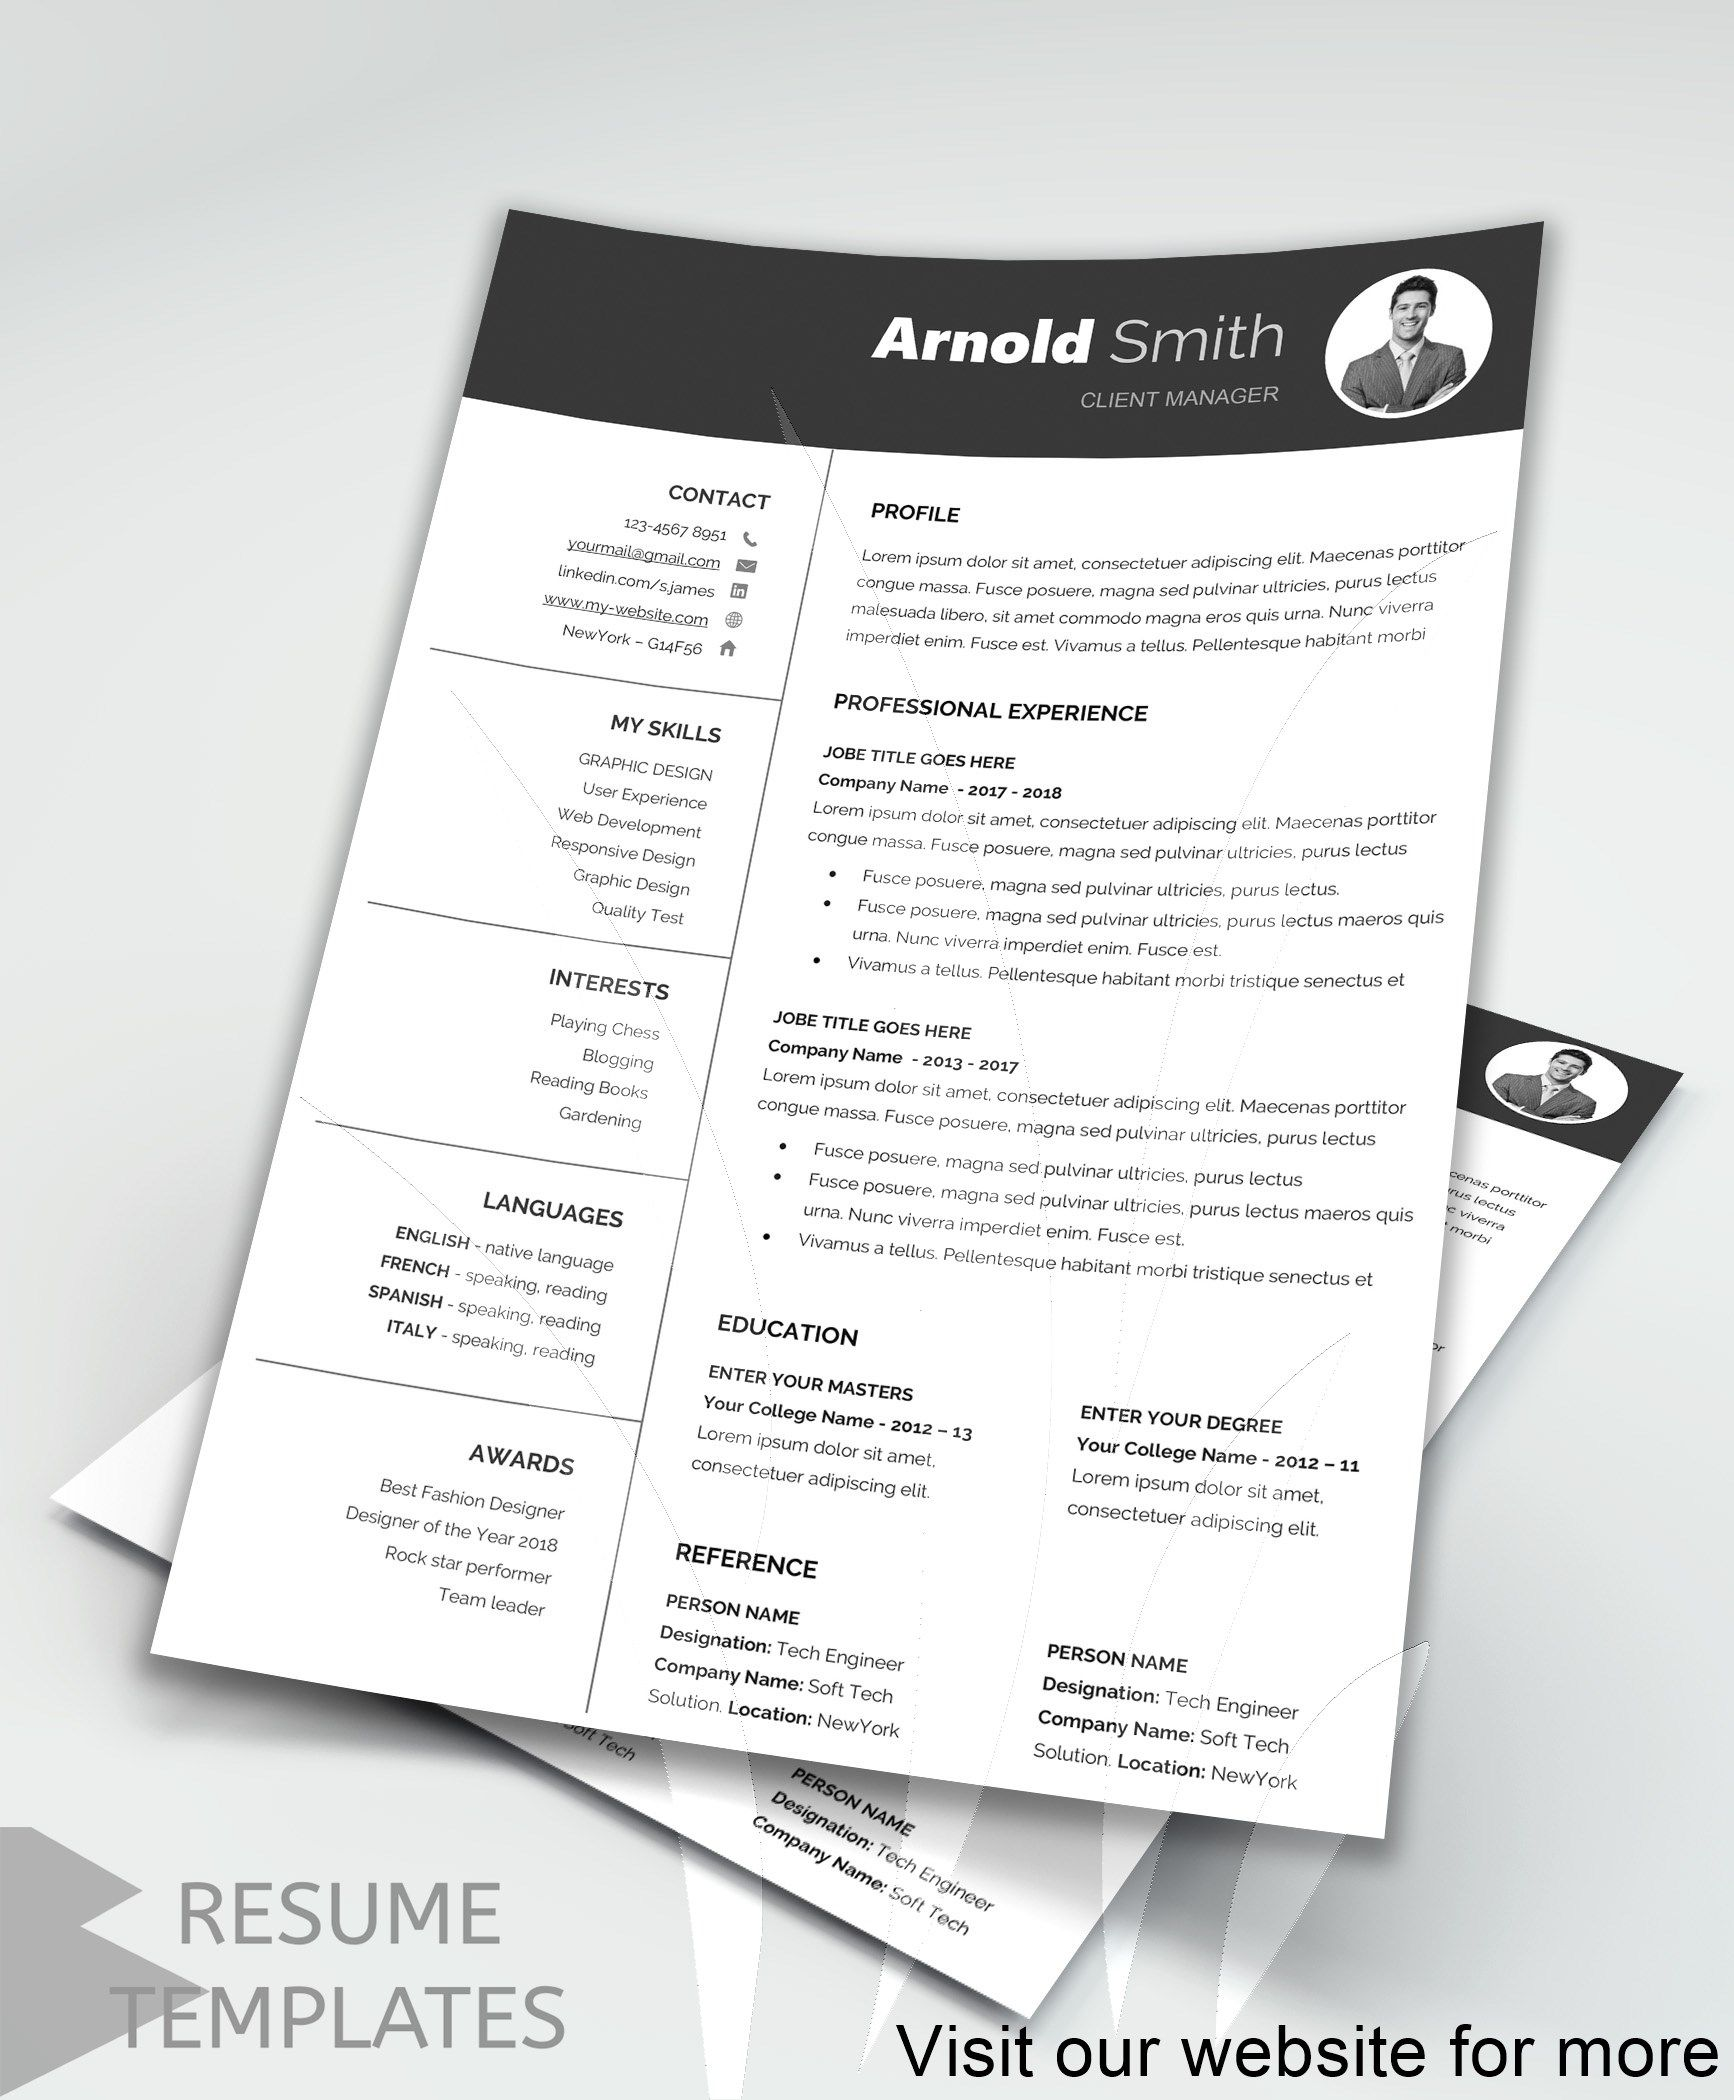 resume examples layout Best in 2020 Downloadable resume